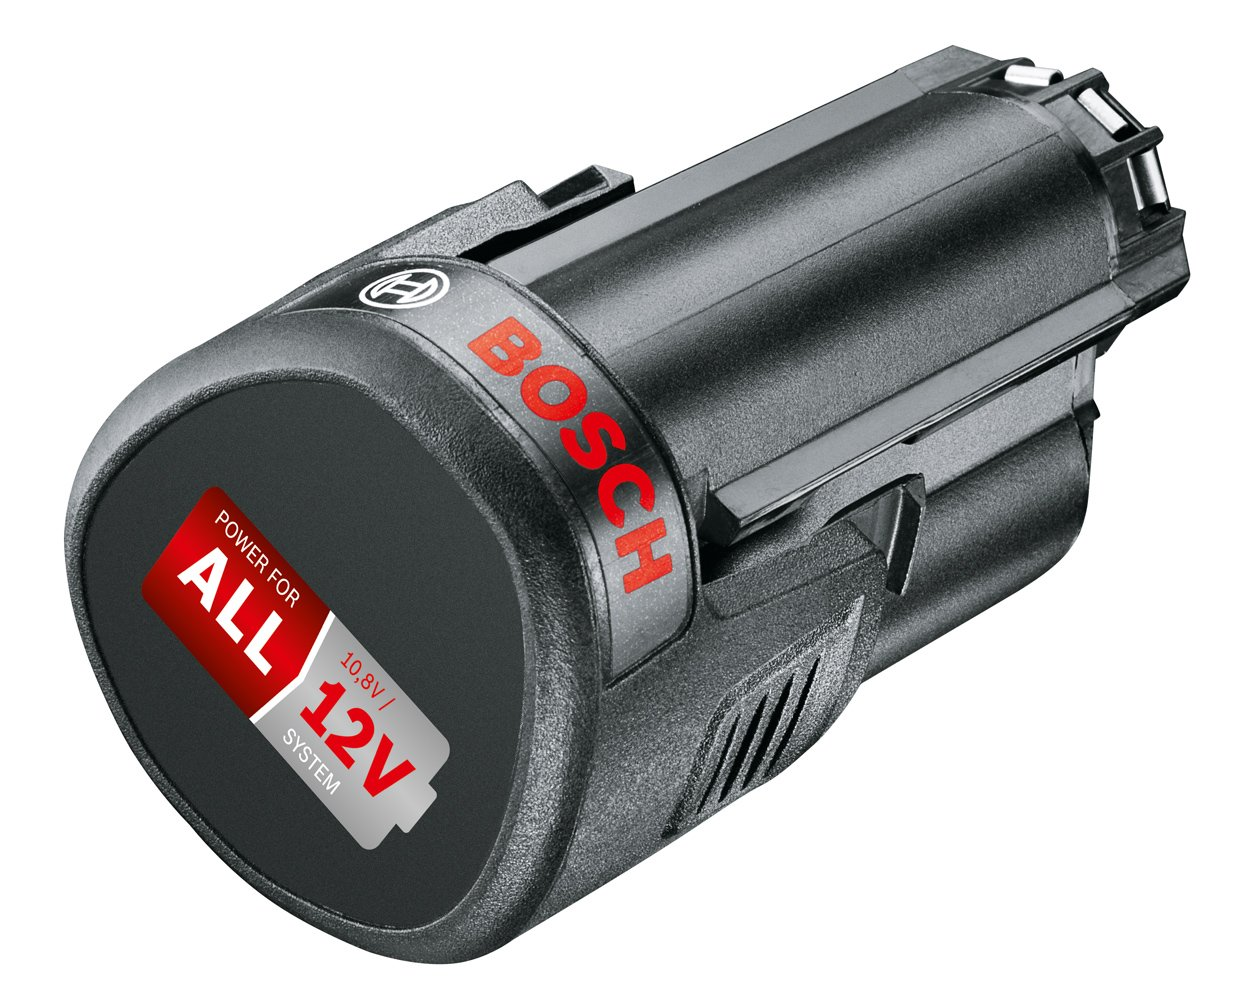 Bosch 12 V 2.5 Ah Lithium-Ion Battery (Compatible for All Tools in 12 V Power for All System) 1600A00H3D